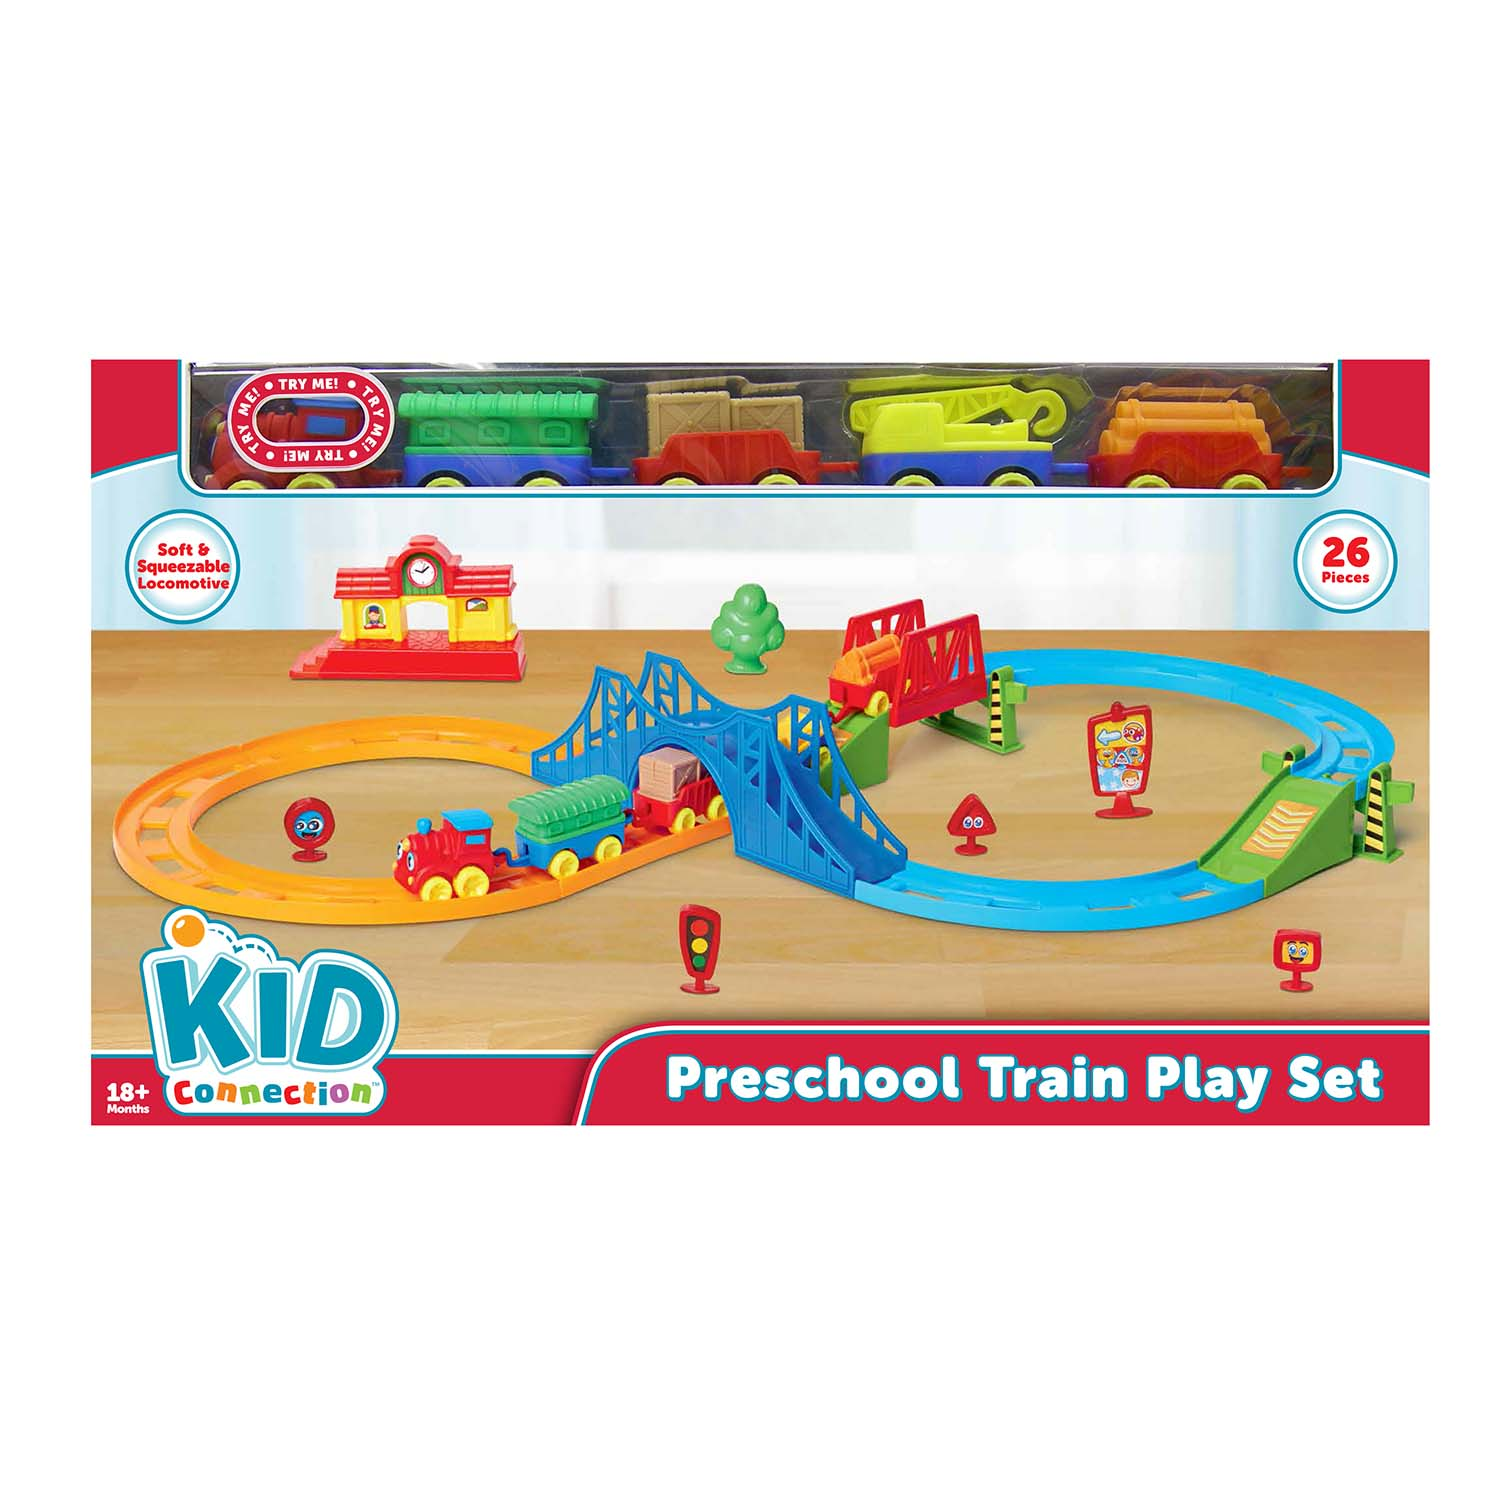 Kid Connection Preschool Train Play Set by Dongguan Supreme Delicate Toys Co. Ltd.